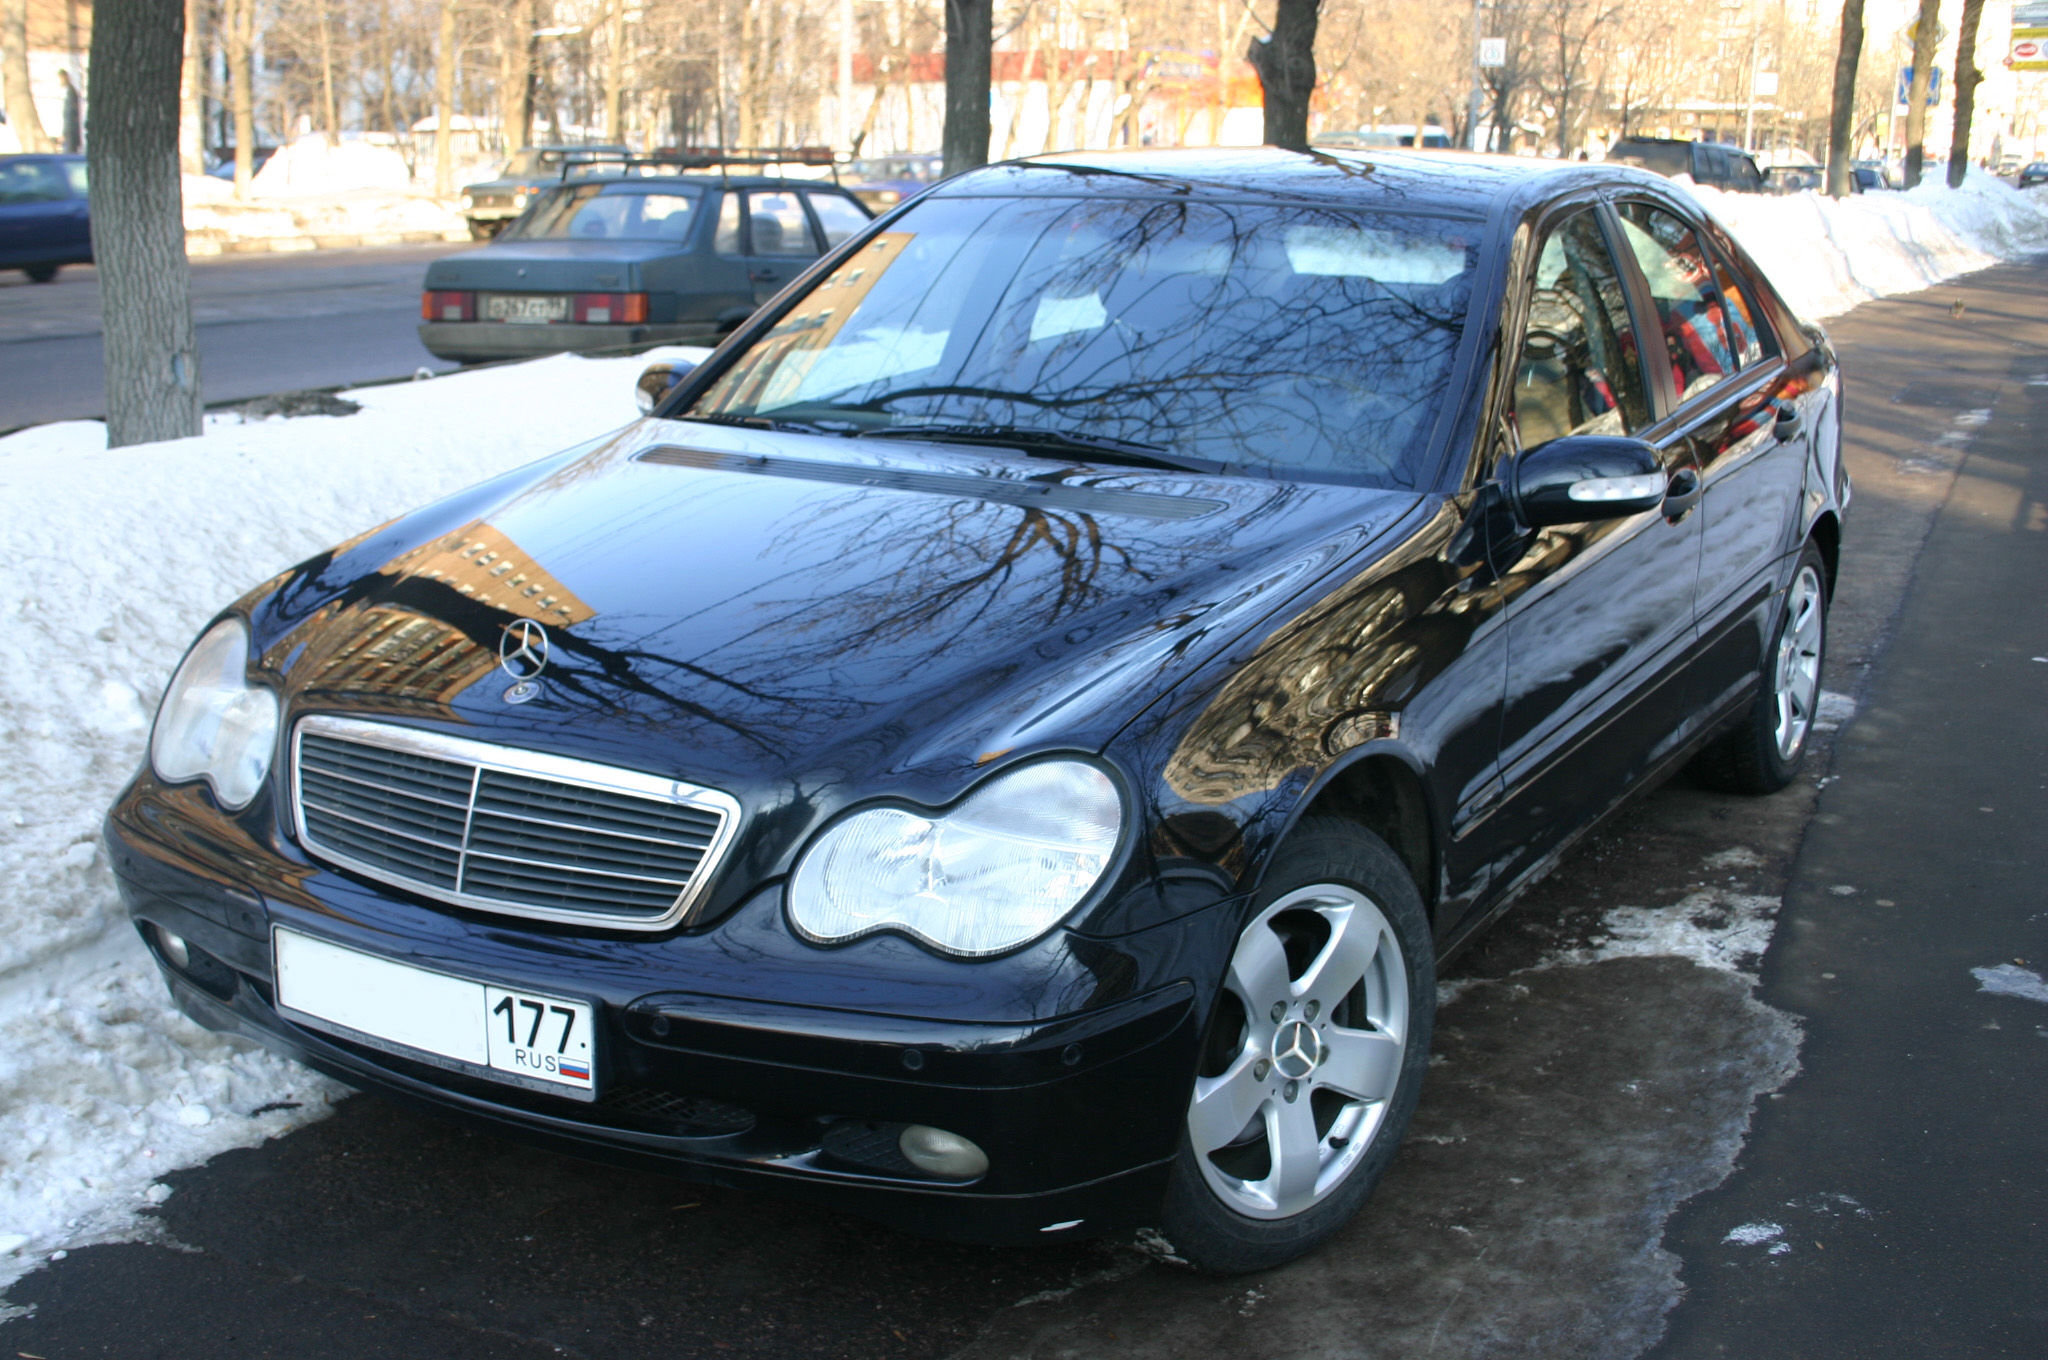 2001 mercedes benz c240 pictures for sale for 2001 mercedes benz c240 fuel pump